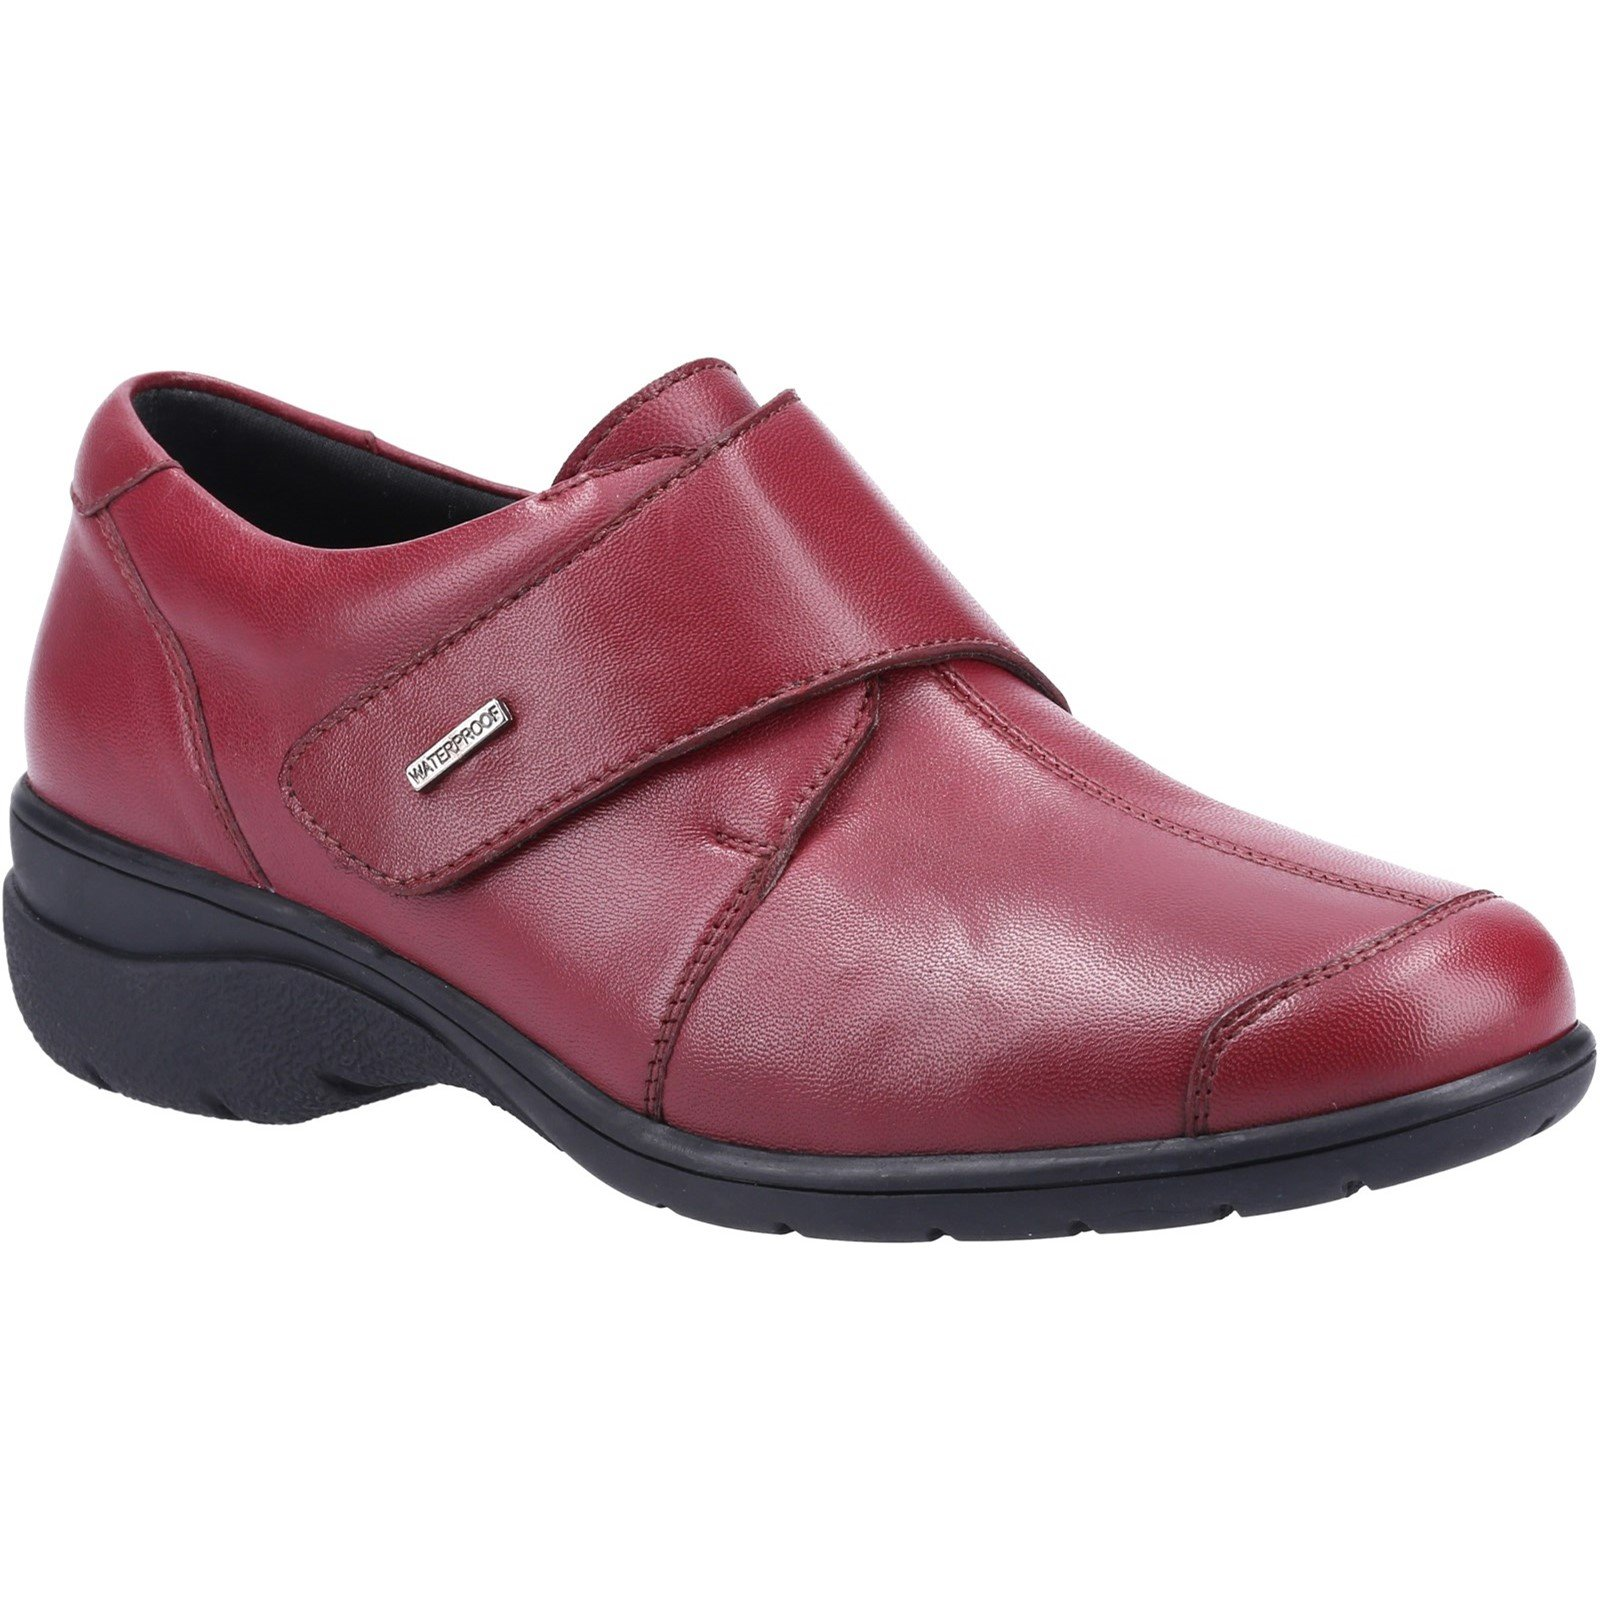 Cotswold Women's Cranham Touch Fastening Trainer Various Colours 32980 - Red 4